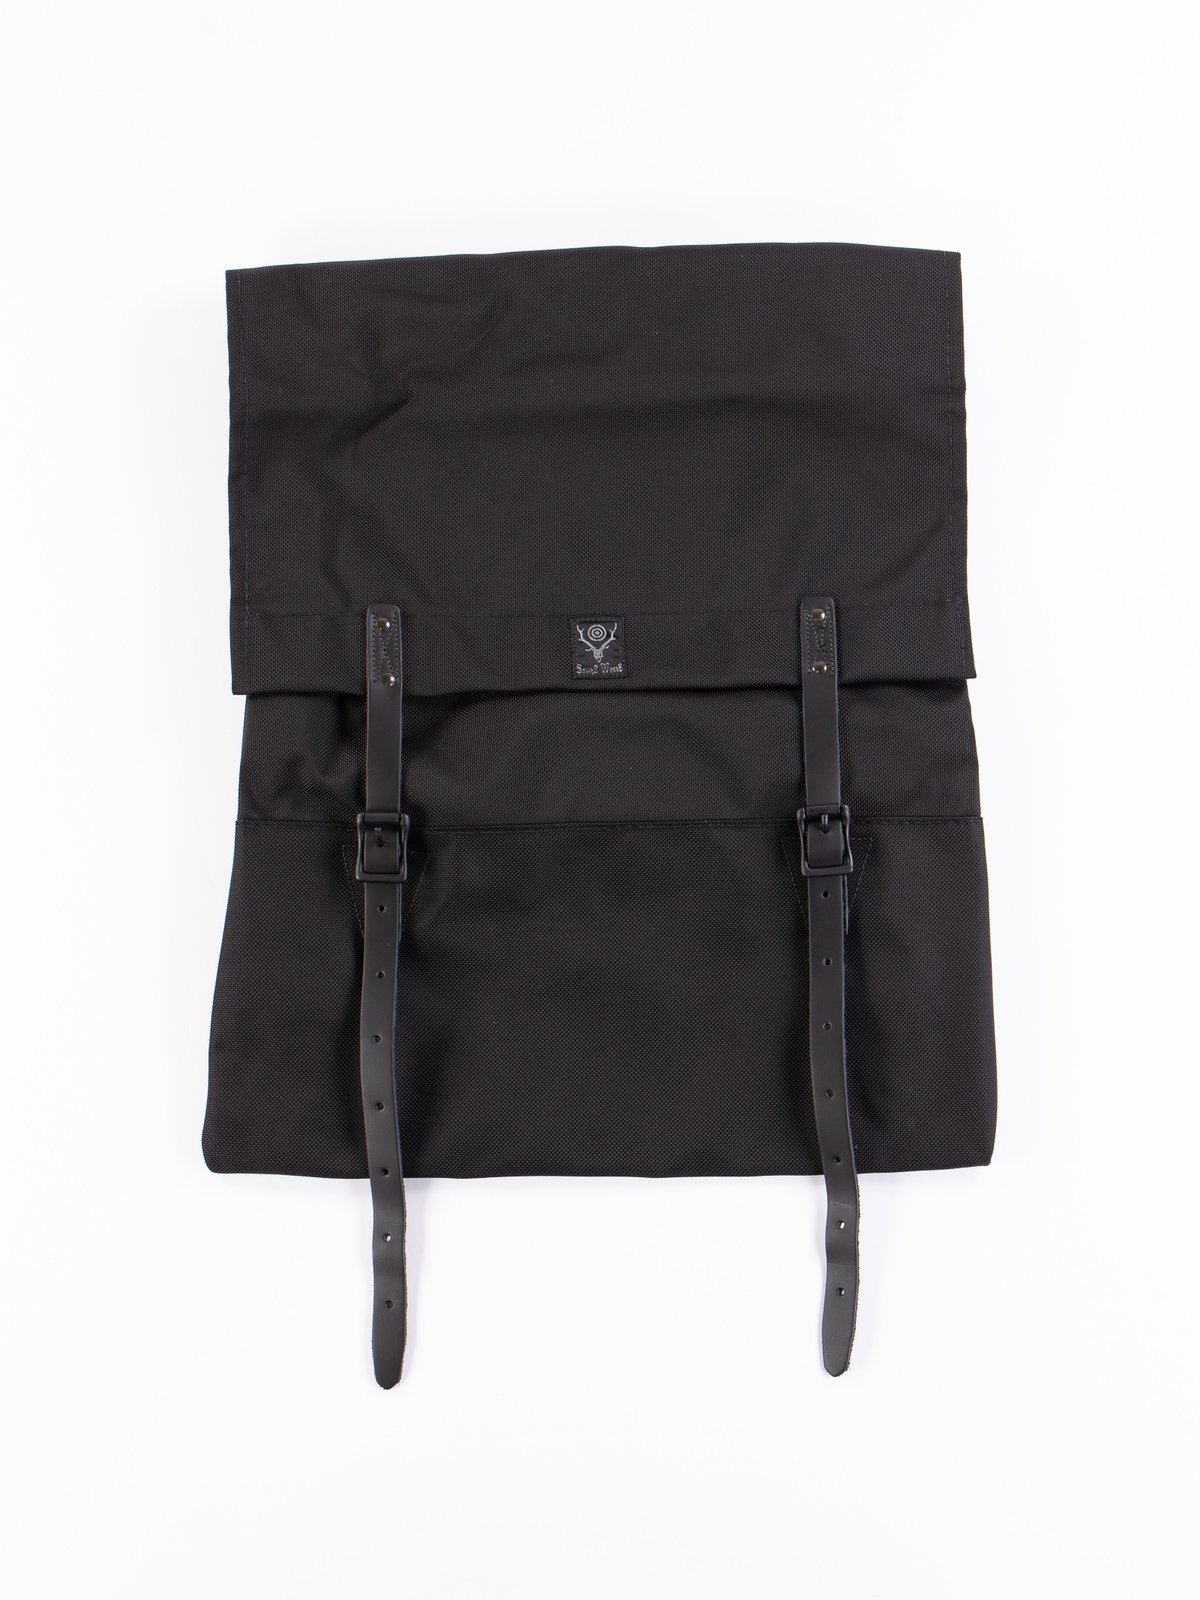 Black Ballistic Trek Pack - Image 1